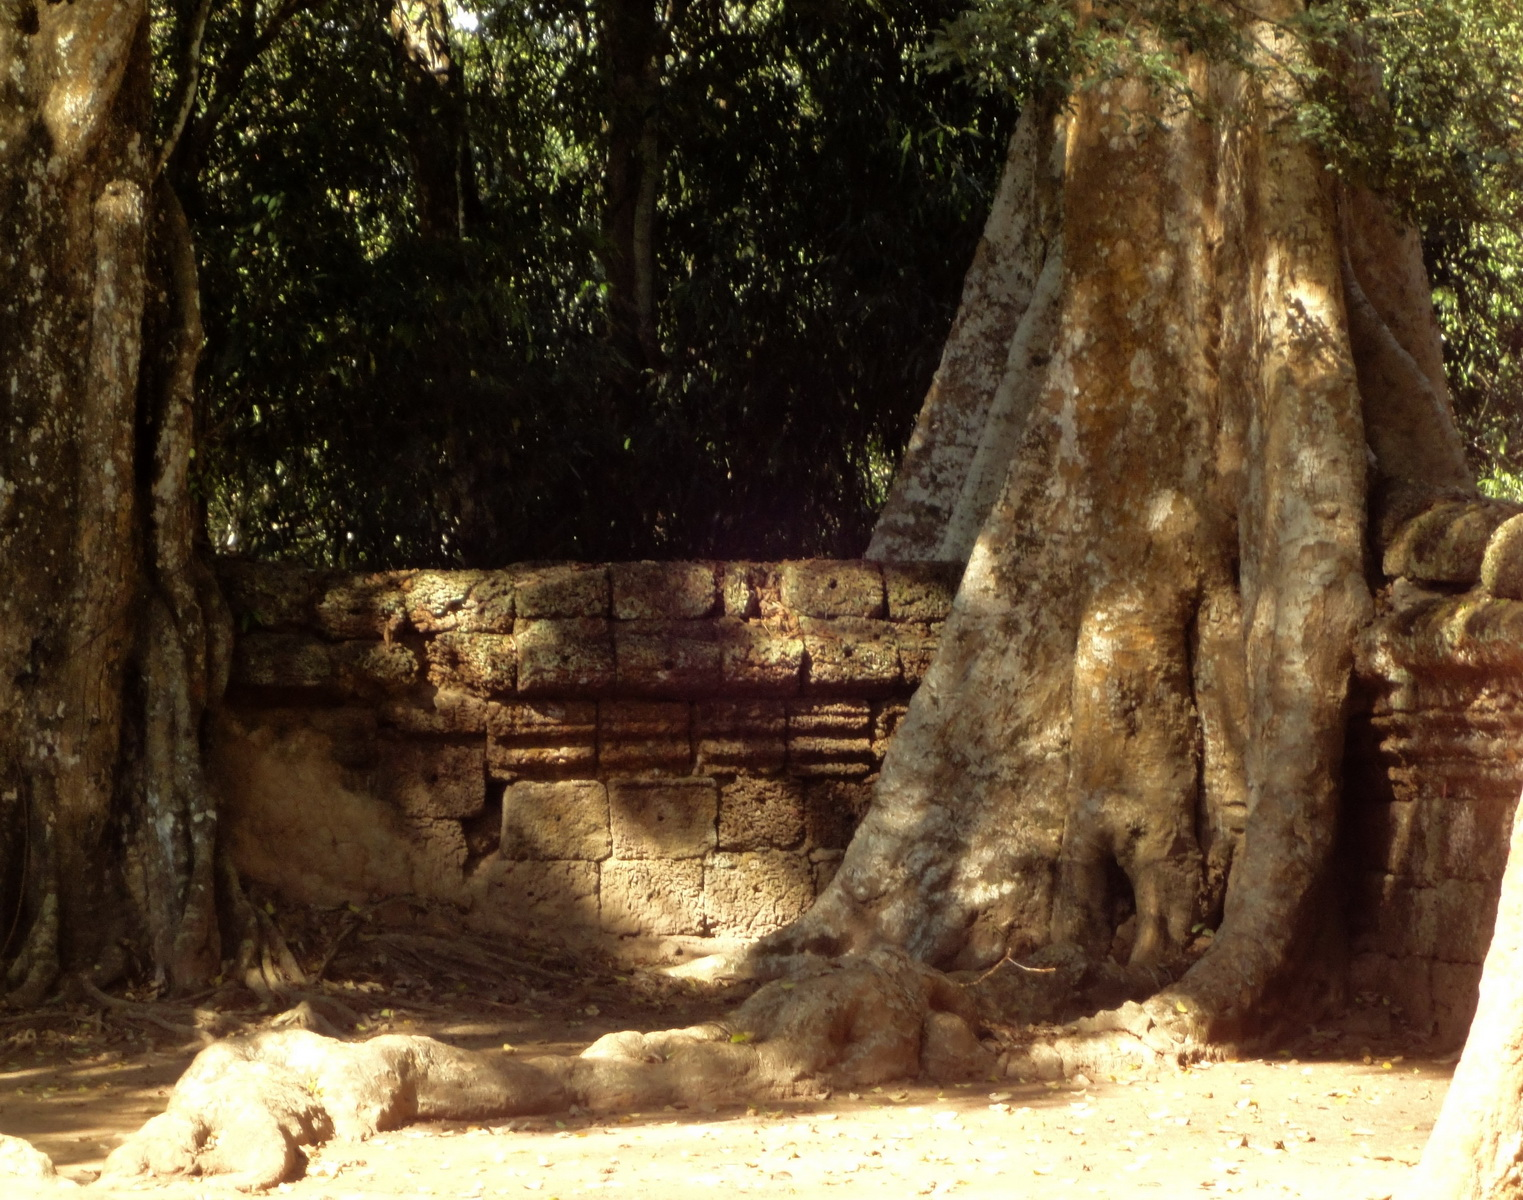 Ta Prohm Temple Tomb Raider giant trees dwaf the laterite walls 06